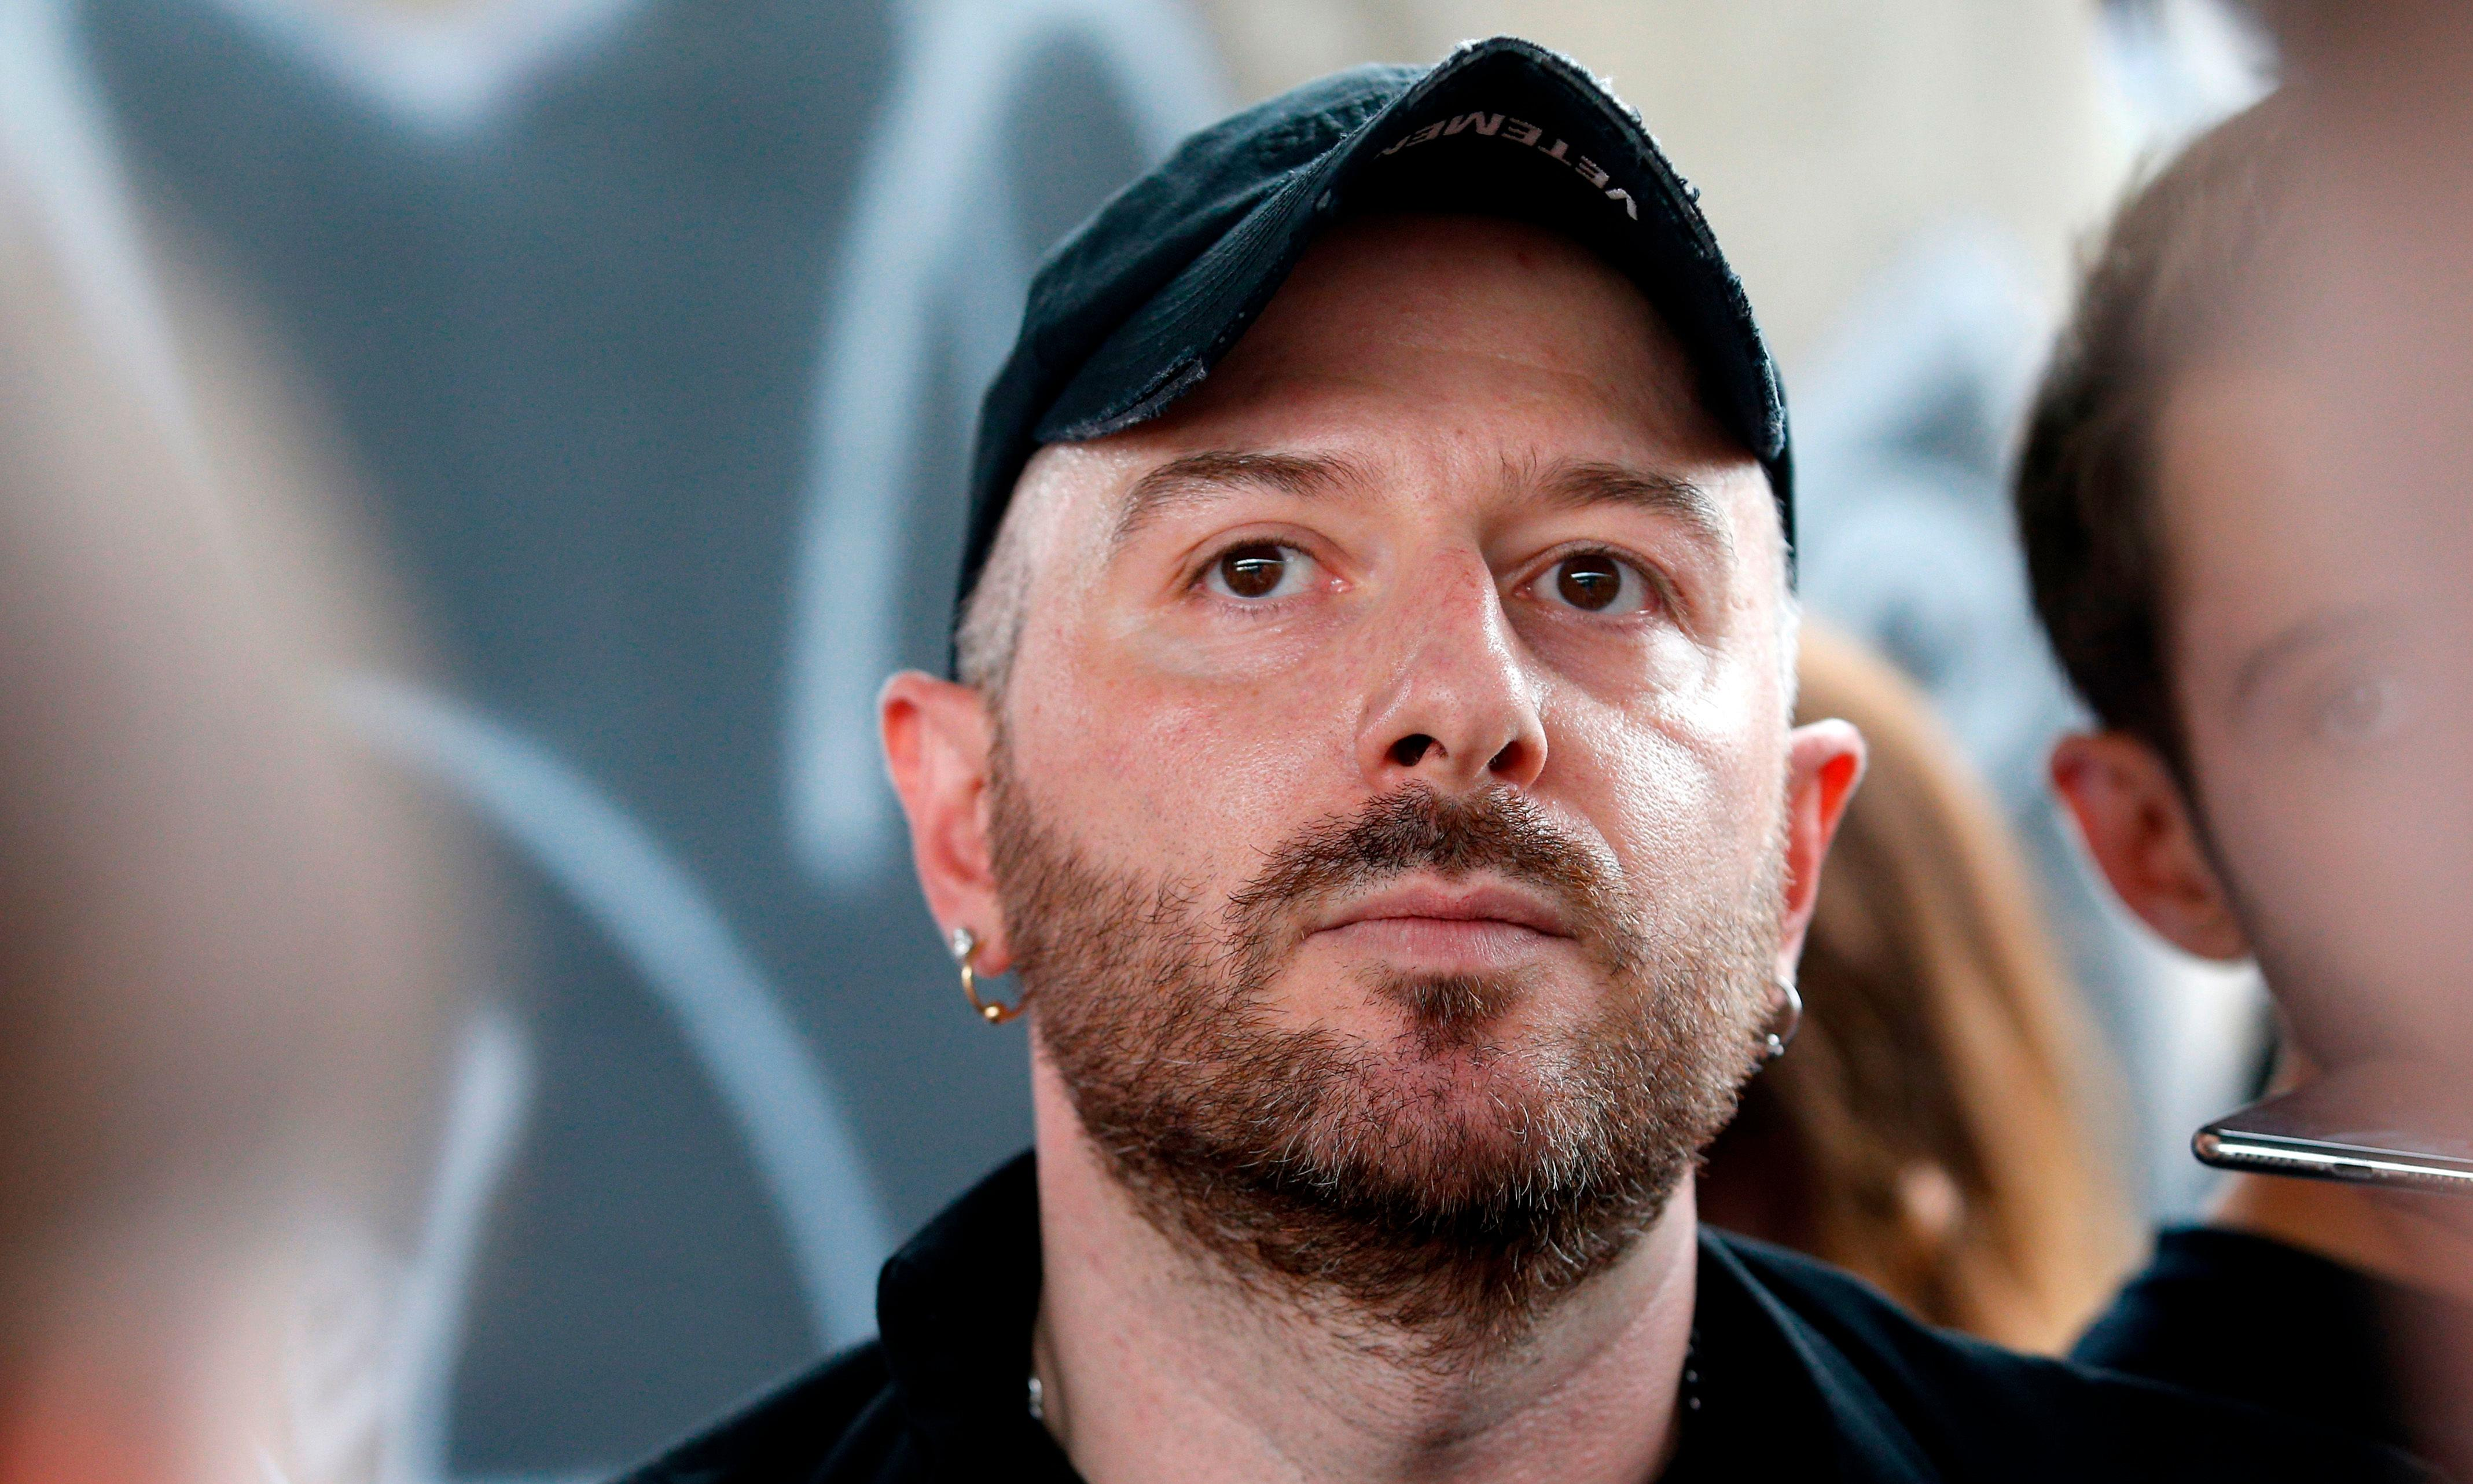 Demna Gvasalia quits Vetements: 'I have accomplished my mission'